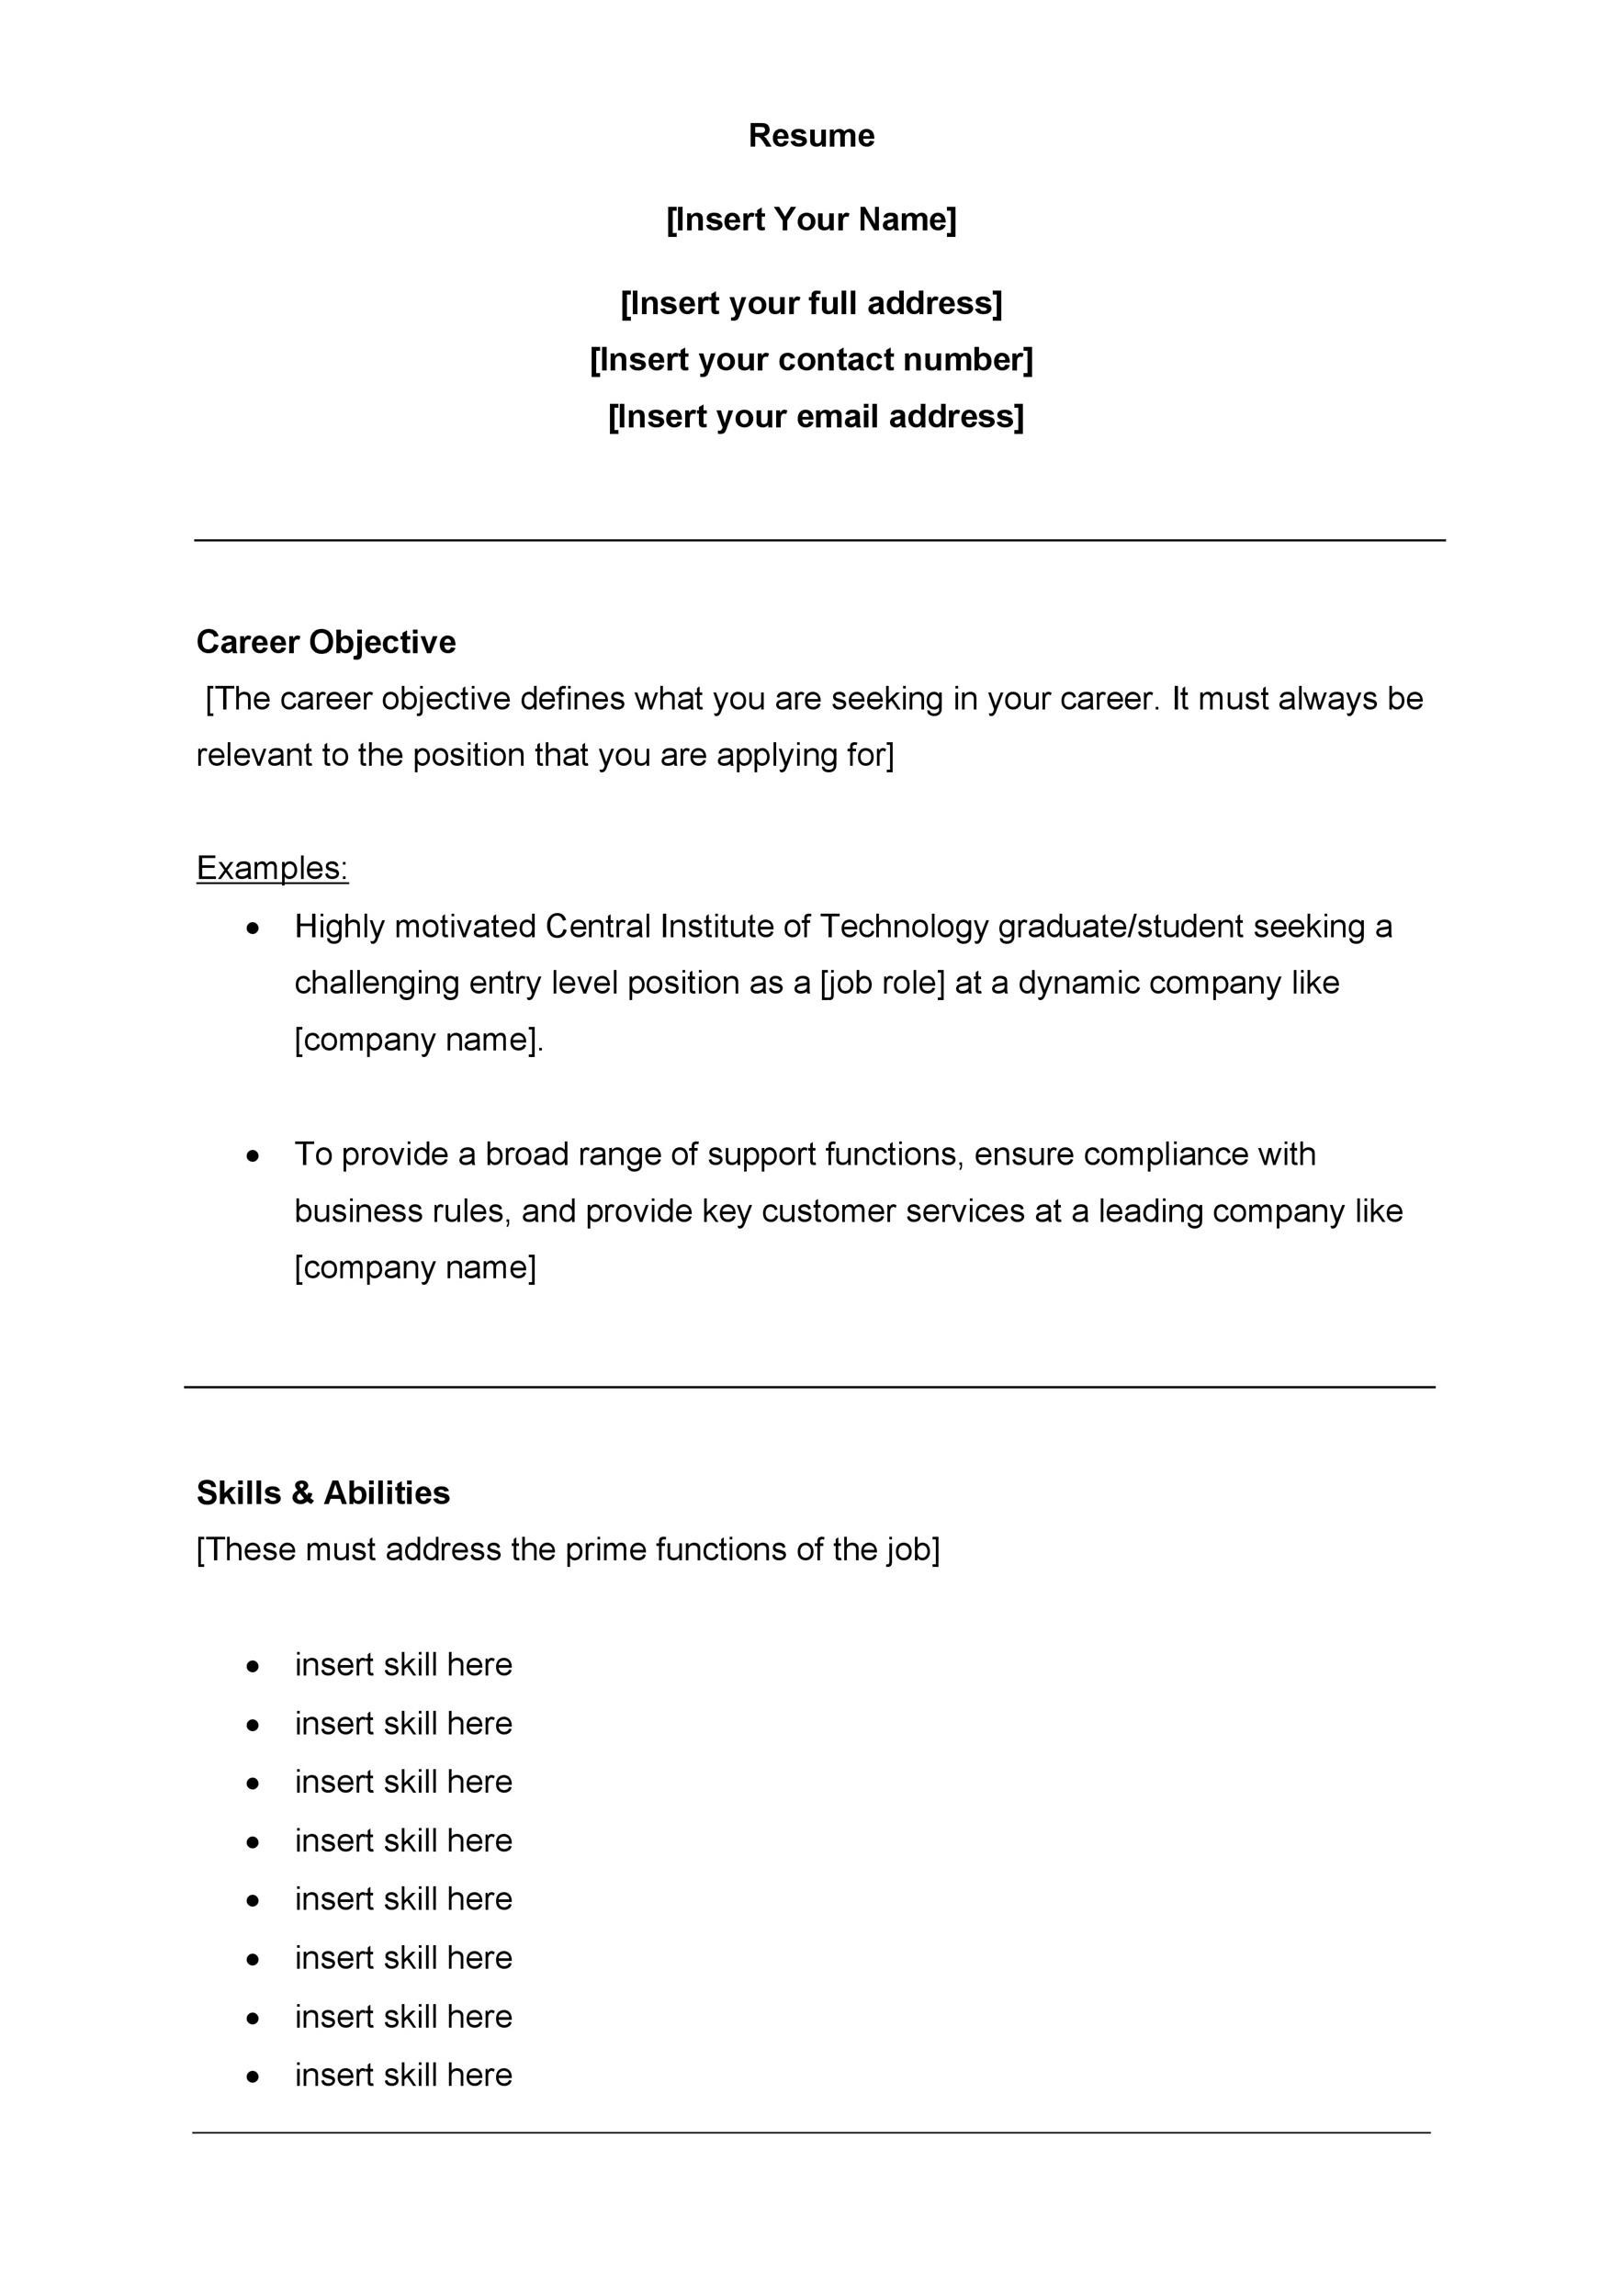 customer service resume samples - Customer Service Job Resume